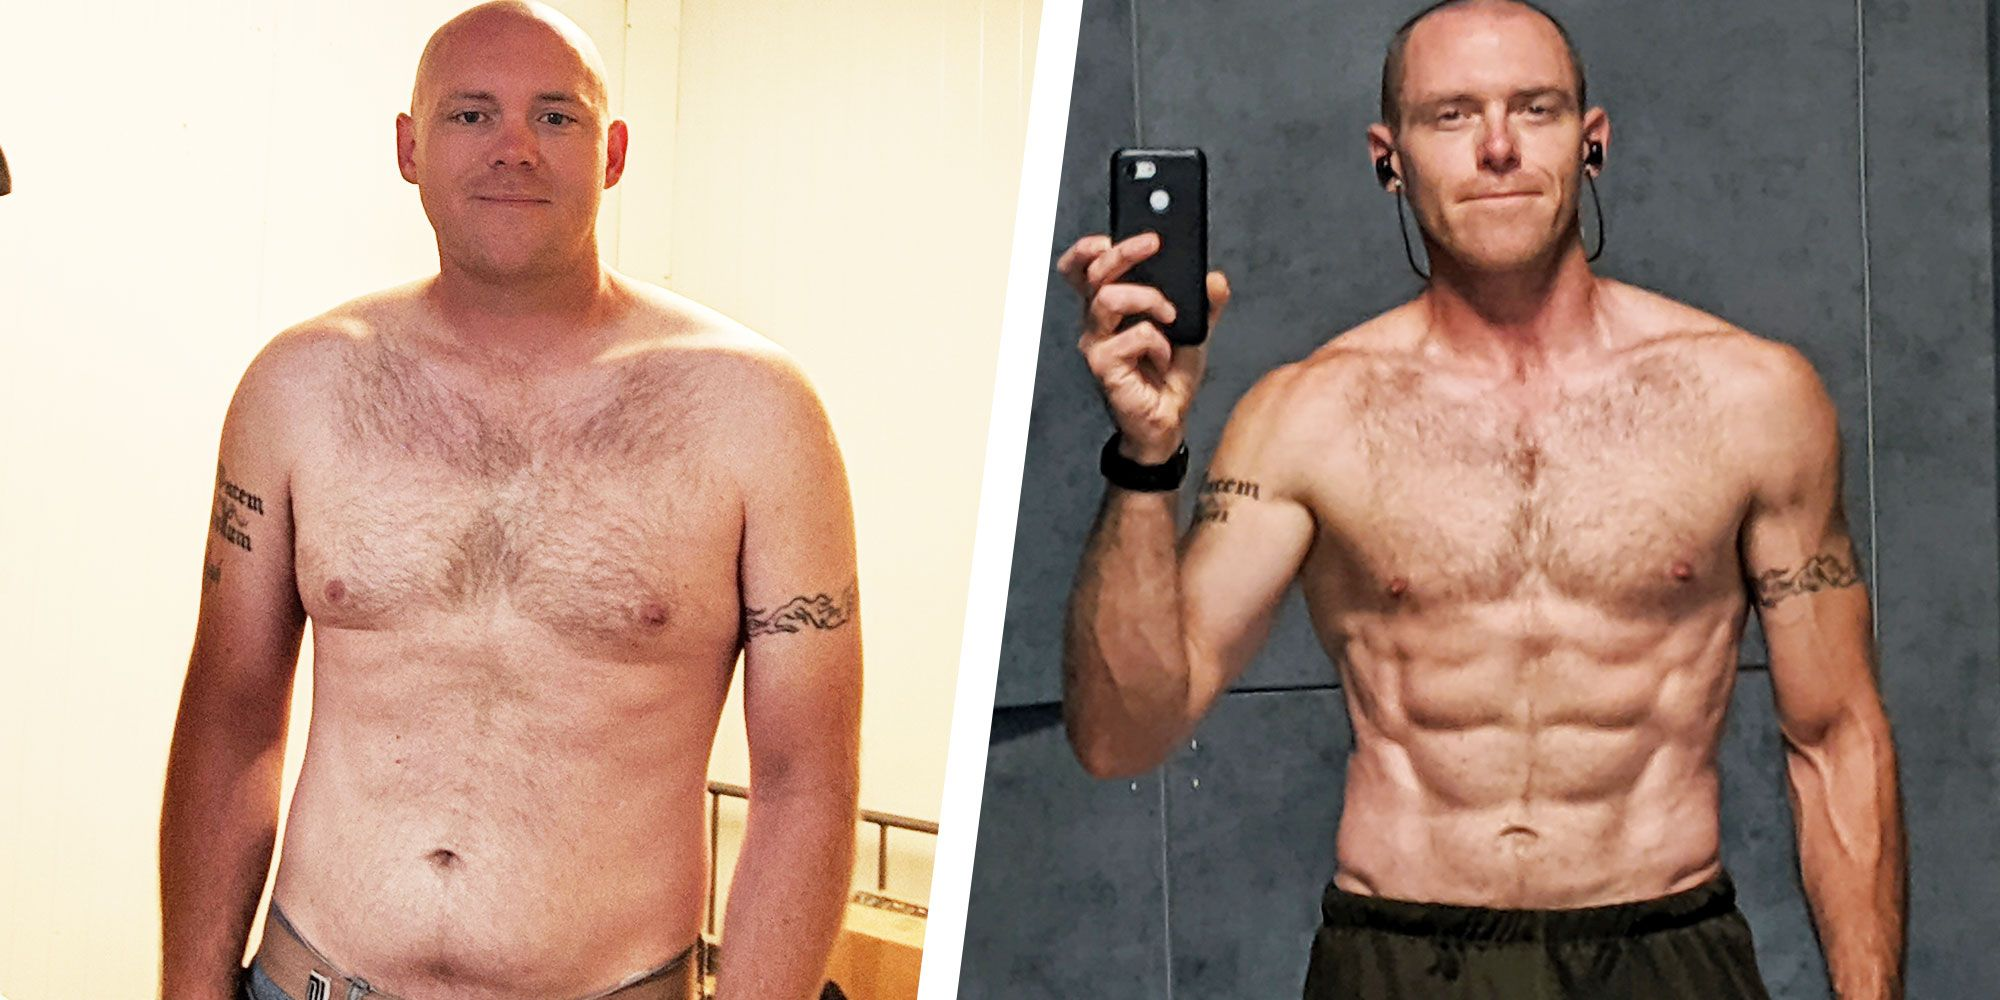 How This Guy Lost More Than 22kg and Avoided Getting 'Skinny Fat'